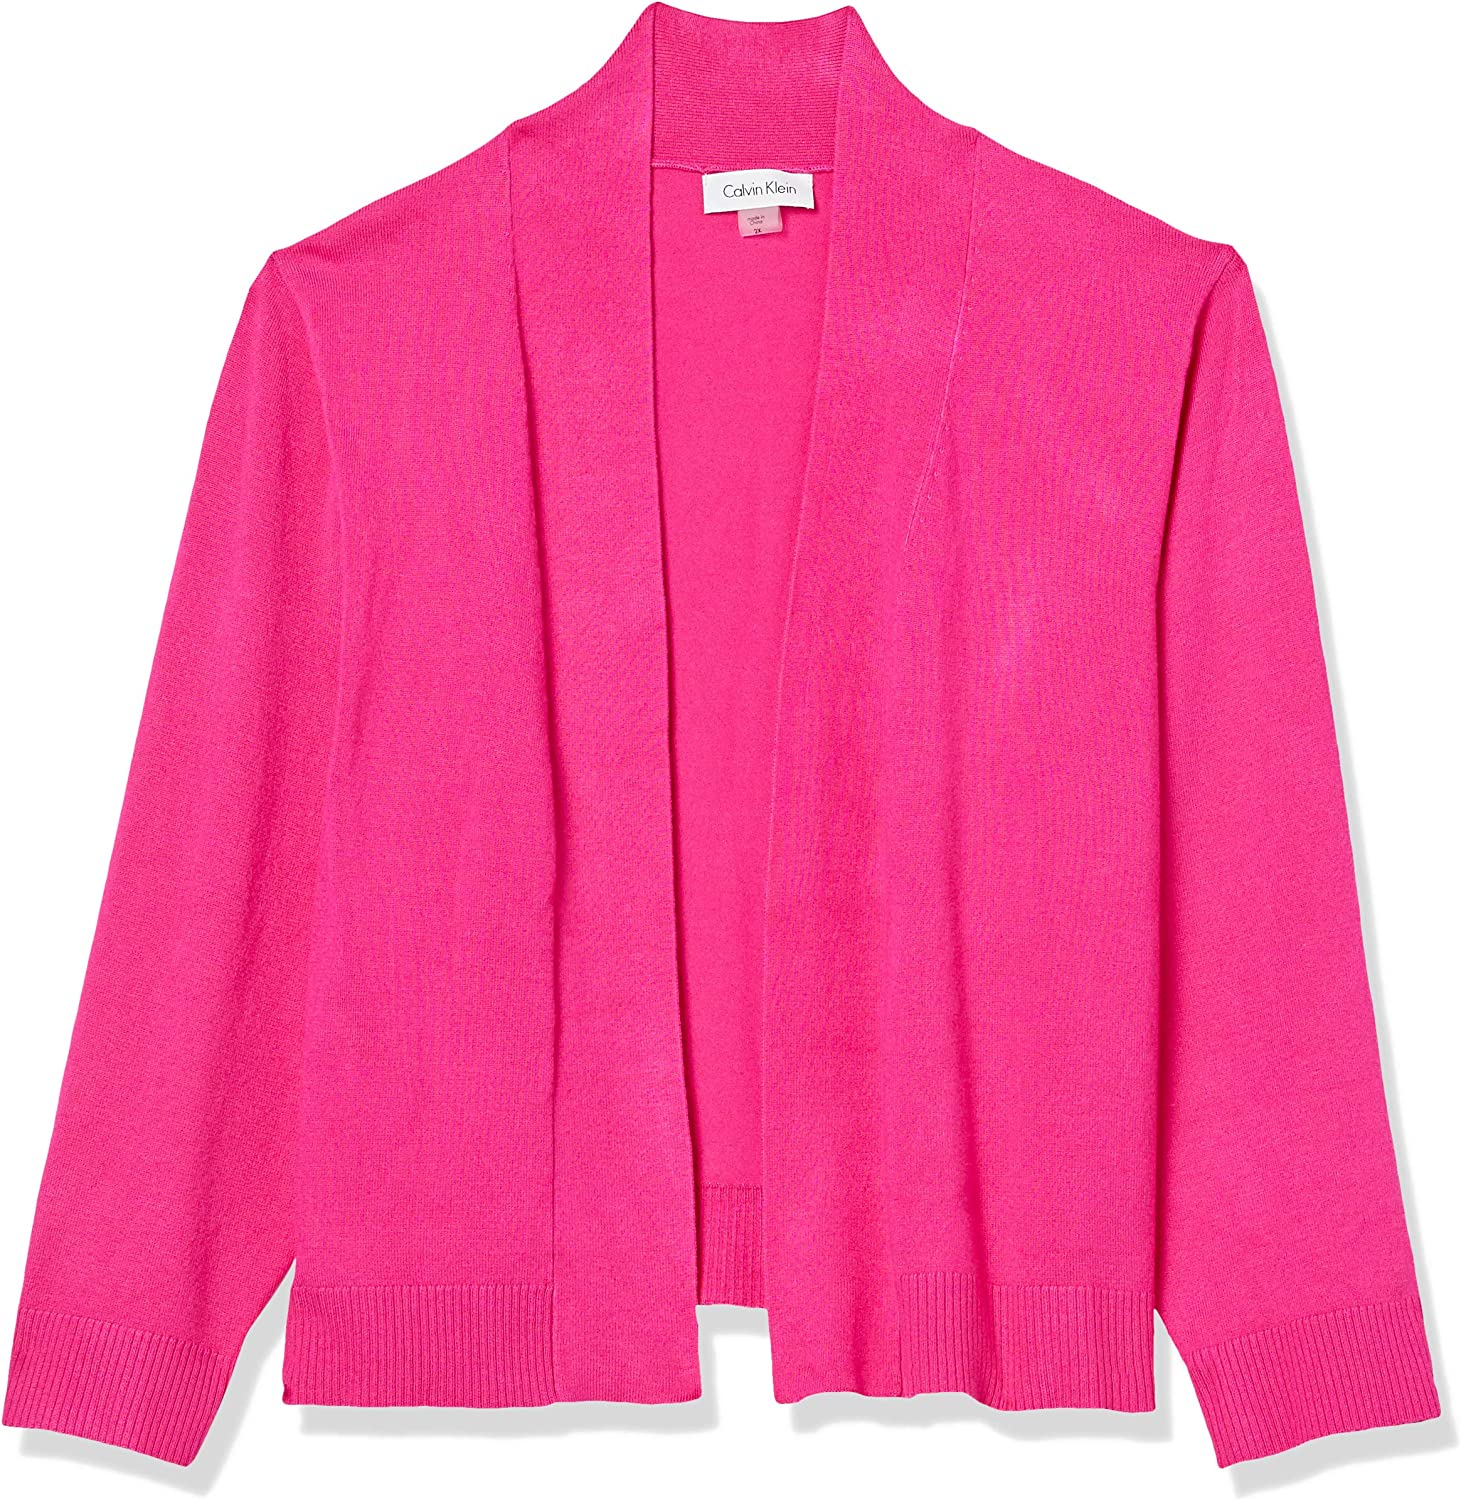 Calvin Klein Women's Plus Size Shrug Sale special price low-pricing Knit Sleeve ¾